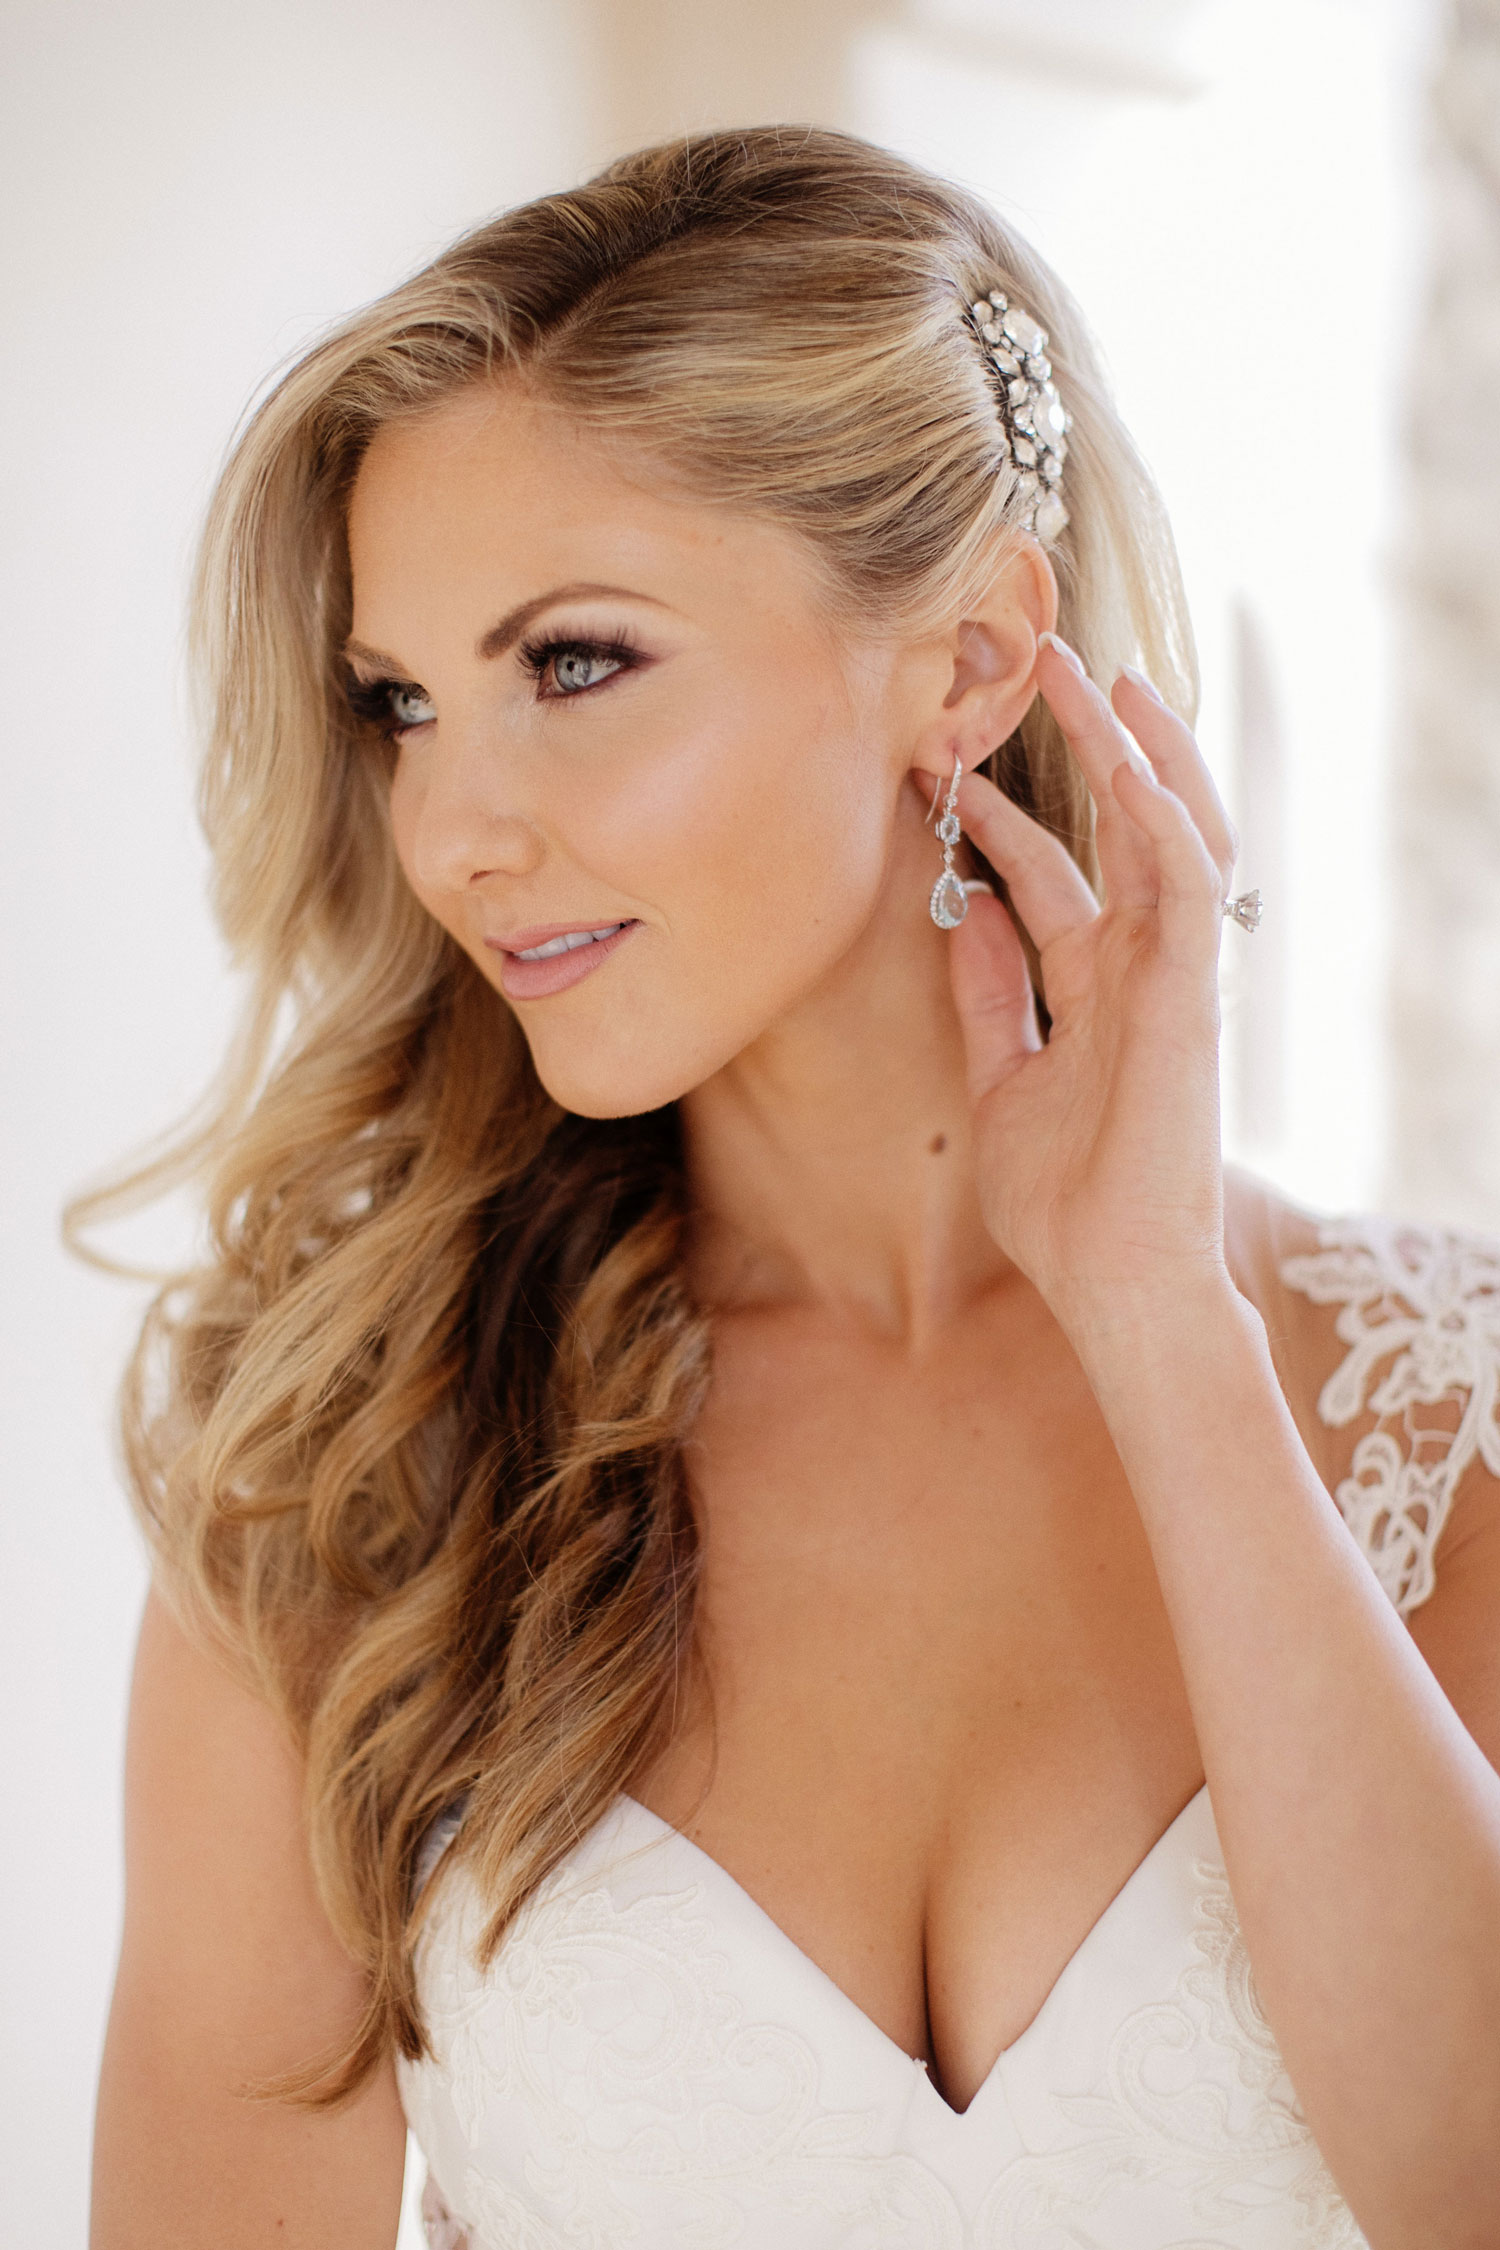 Amy Crawford wedding to gerrit cole blonde hair worn down headpiece